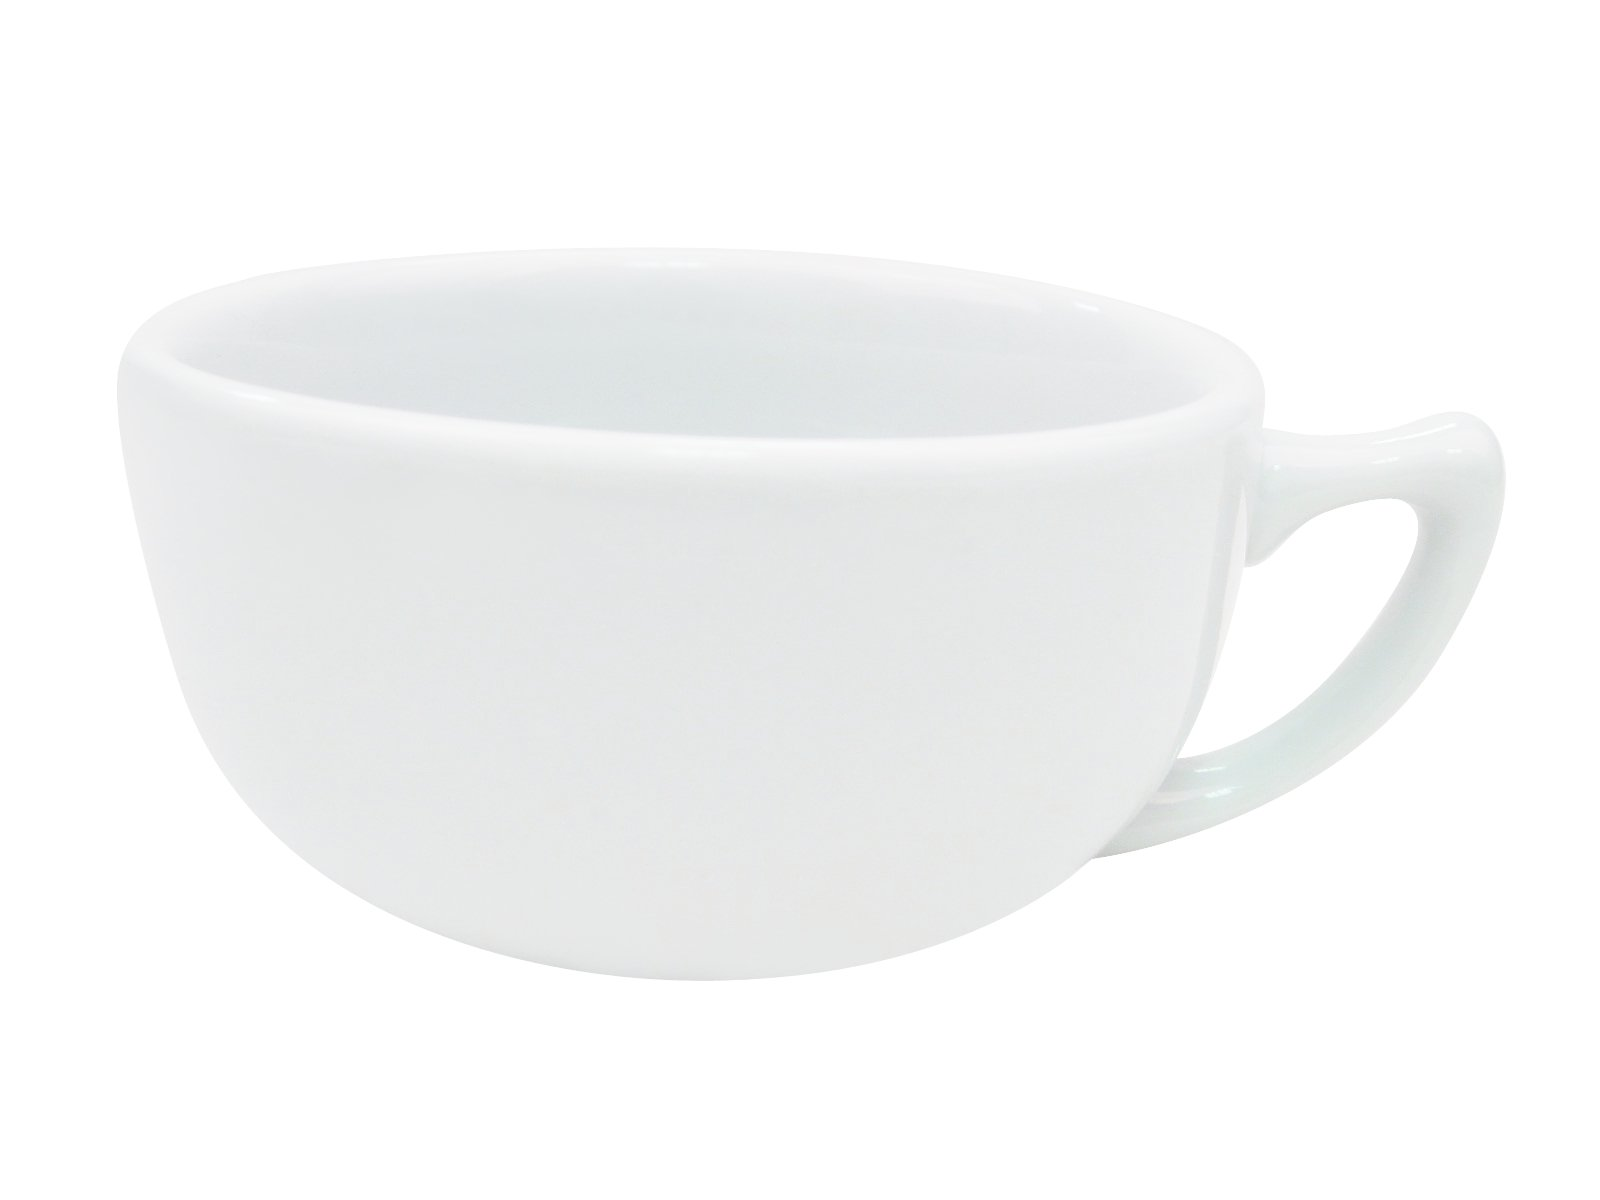 CAC China RCN-56 Clinton Rolled Edge 4-3/4-Inch Super White Porcelain Cappuccino Cup, 14-Ounce, Box of 36